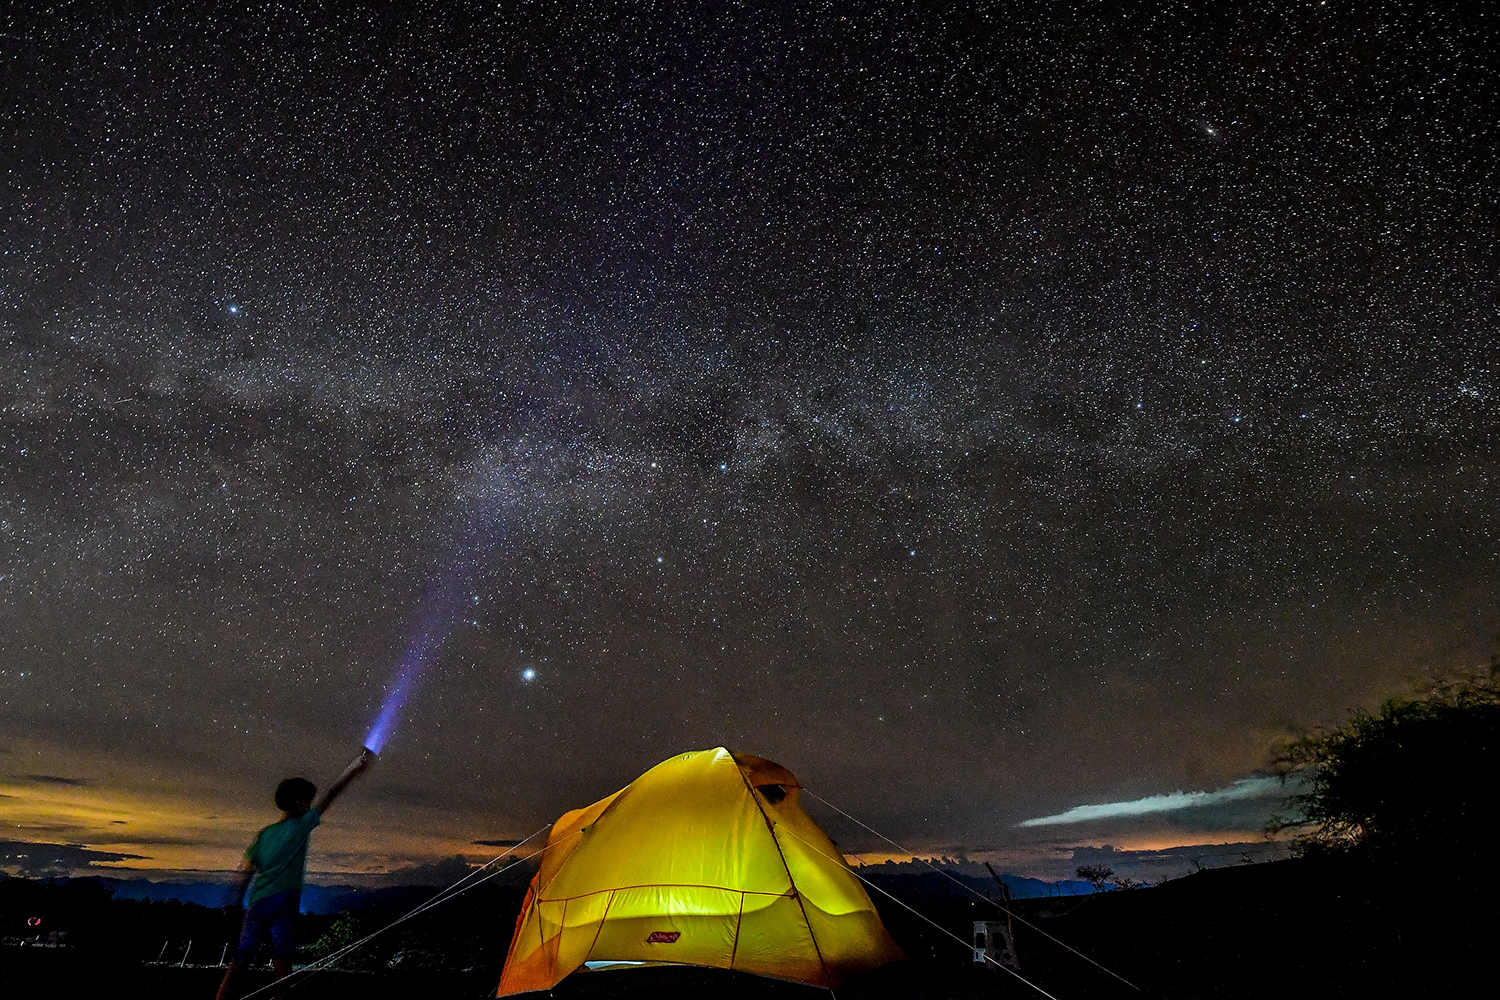 A boy adds to the light show from the Milky Way in the sky over the Tatacoa Desert in Huila, Colombia, on Oct. 11. LUIS ACOSTA/AFP/GETTY IMAGES